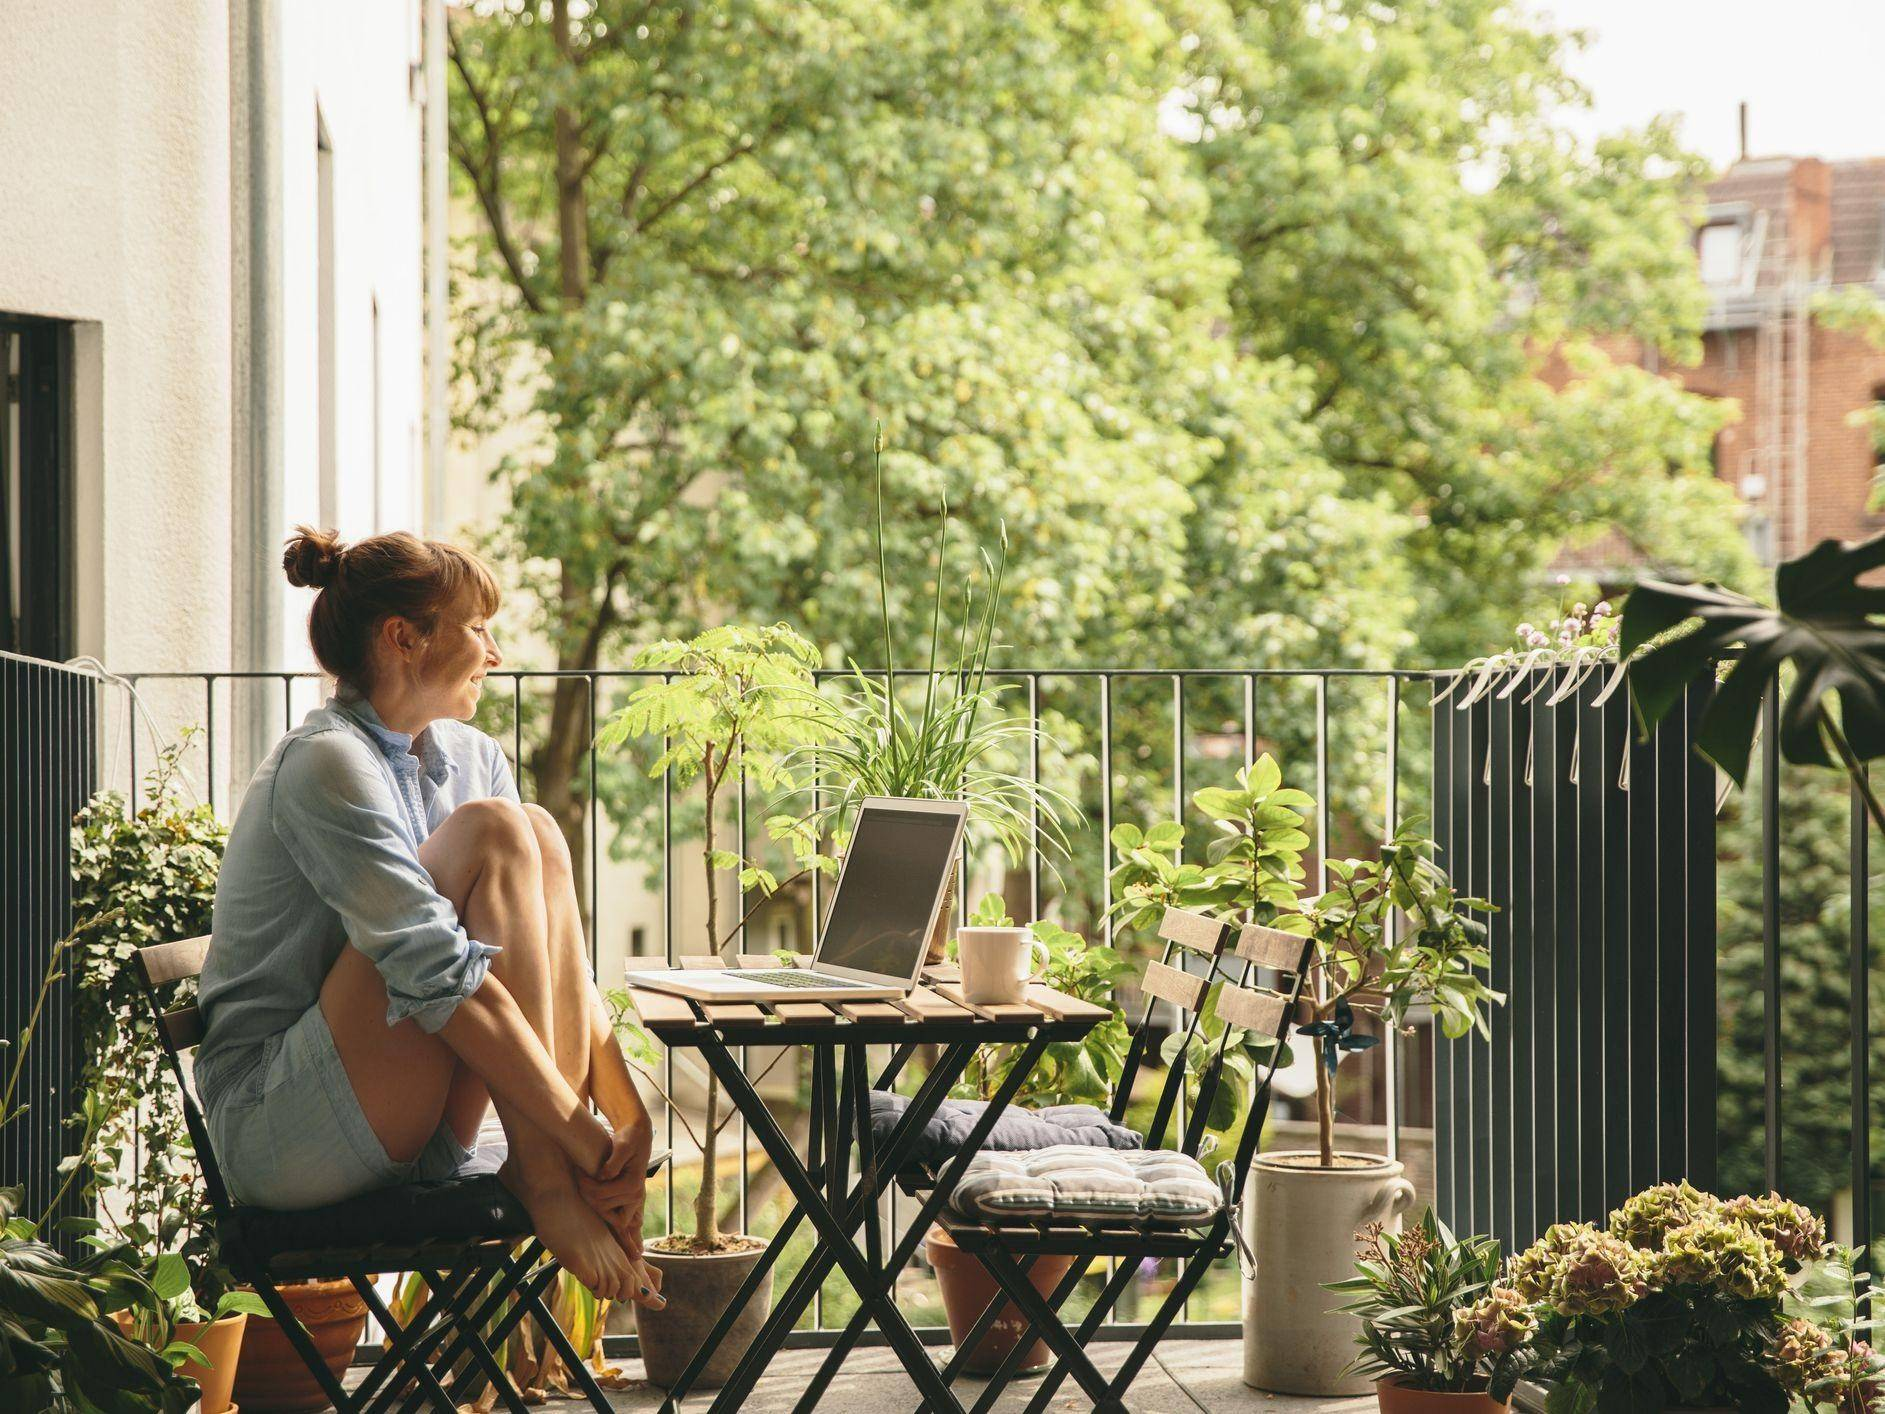 woman seated at patio table on balcony